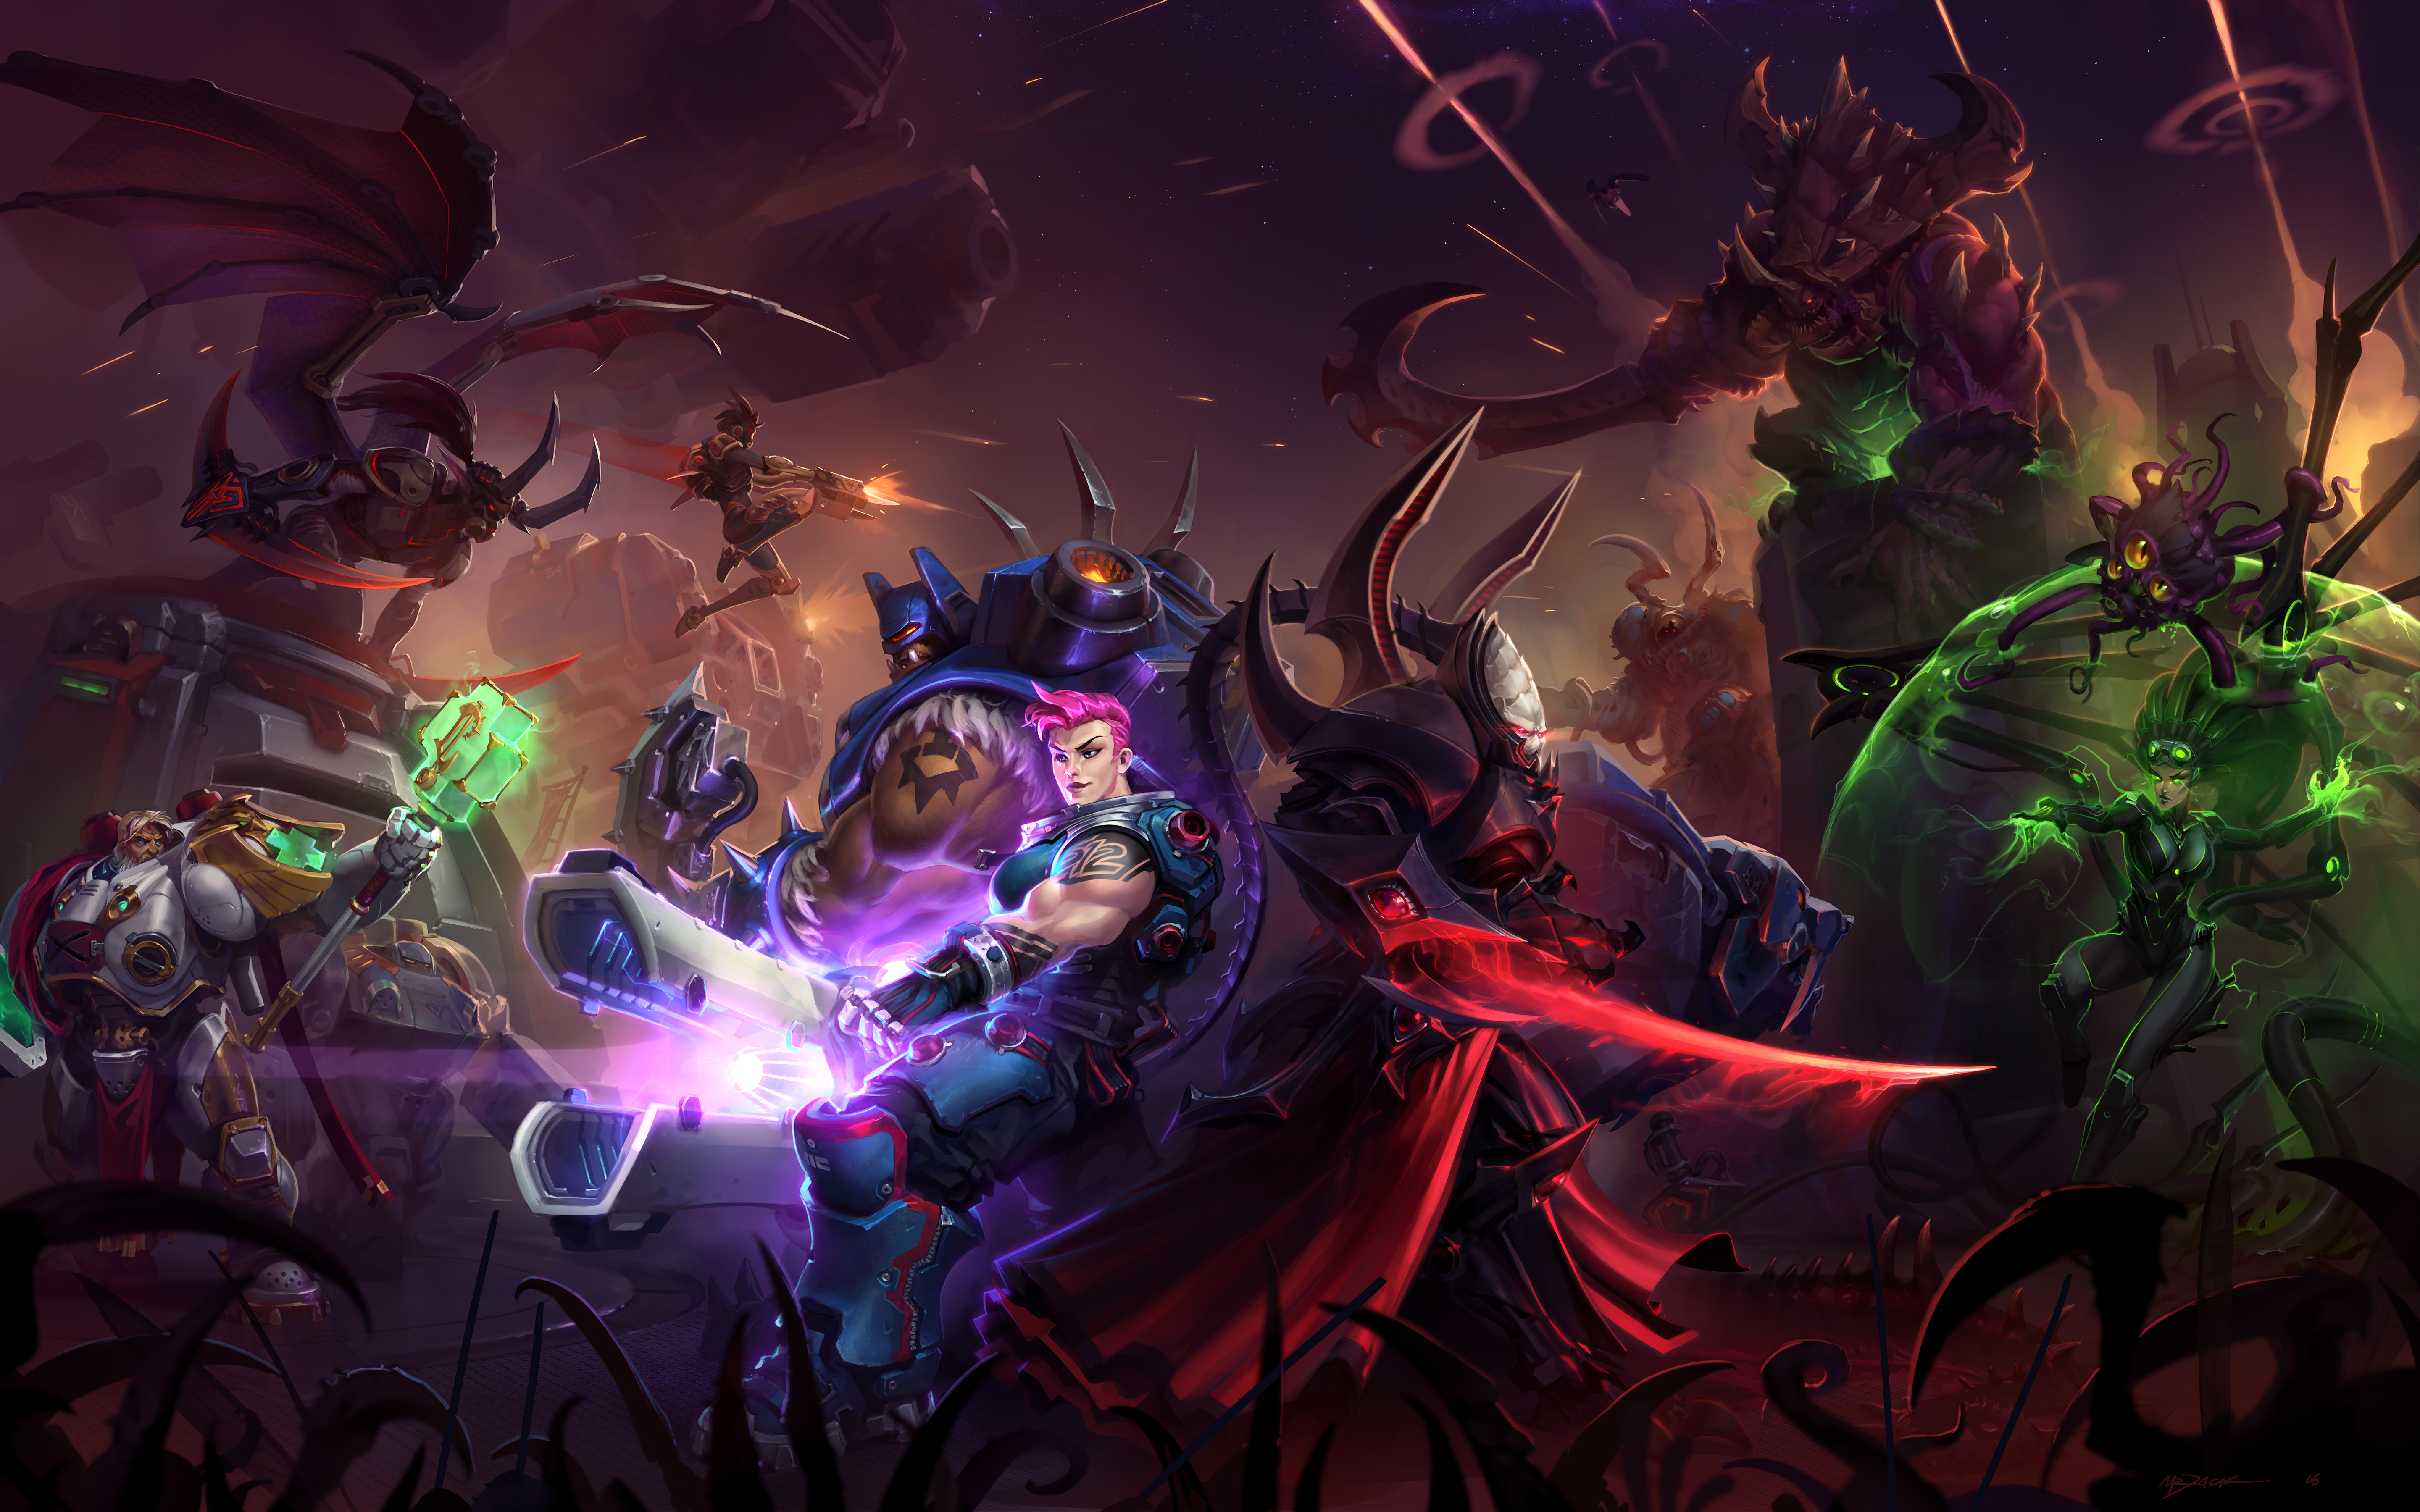 192 Heroes Of The Storm Hd Wallpapers Background Images